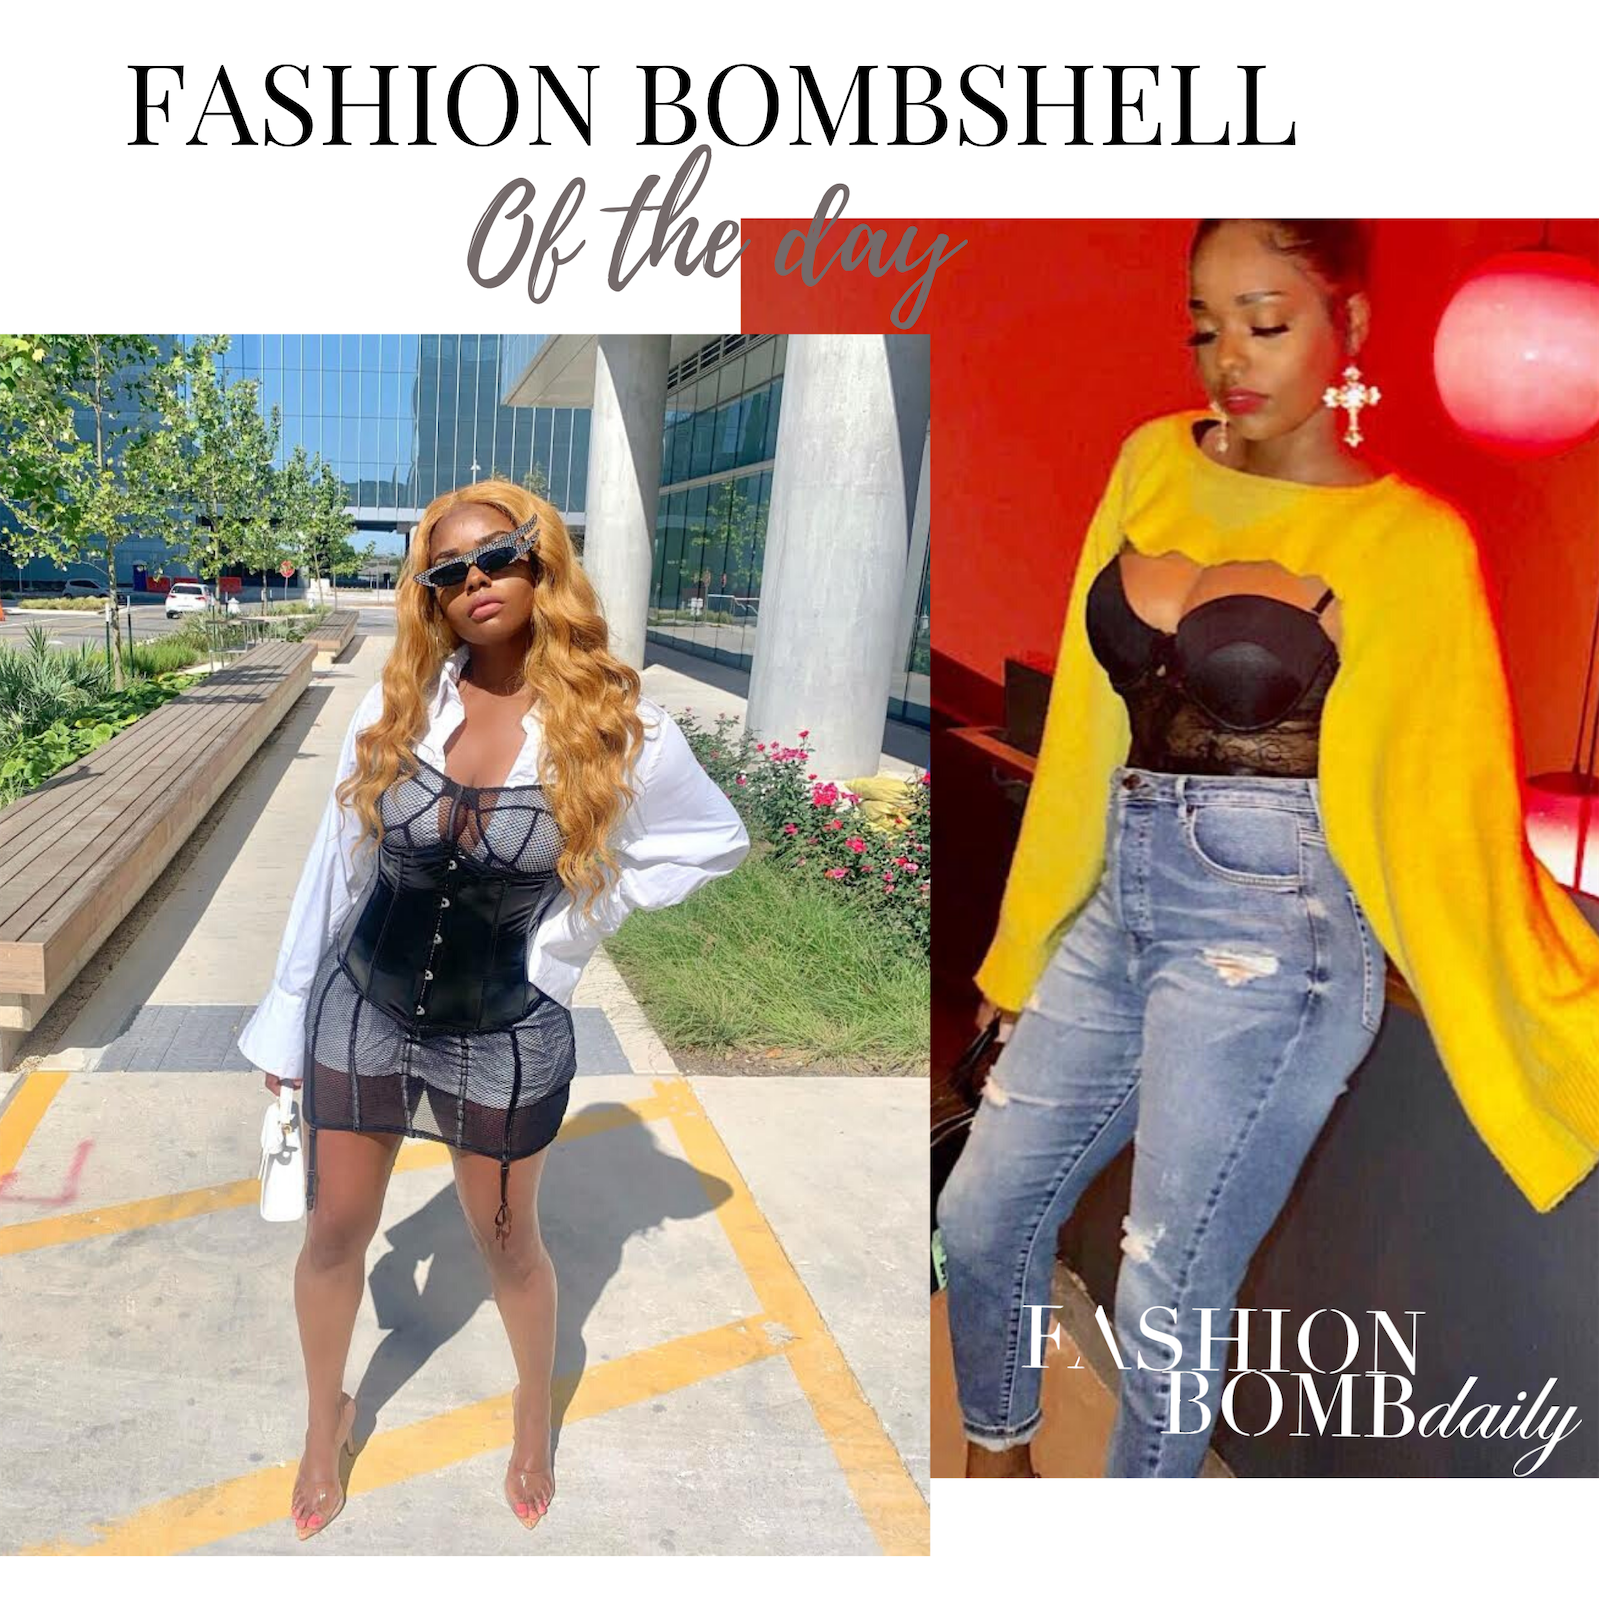 Fashion Bombshell Of The Day Vey From Texas Fashion Bomb Daily Style Magazine Celebrity Fashion Fashion News What To Wear Runway Show Reviews